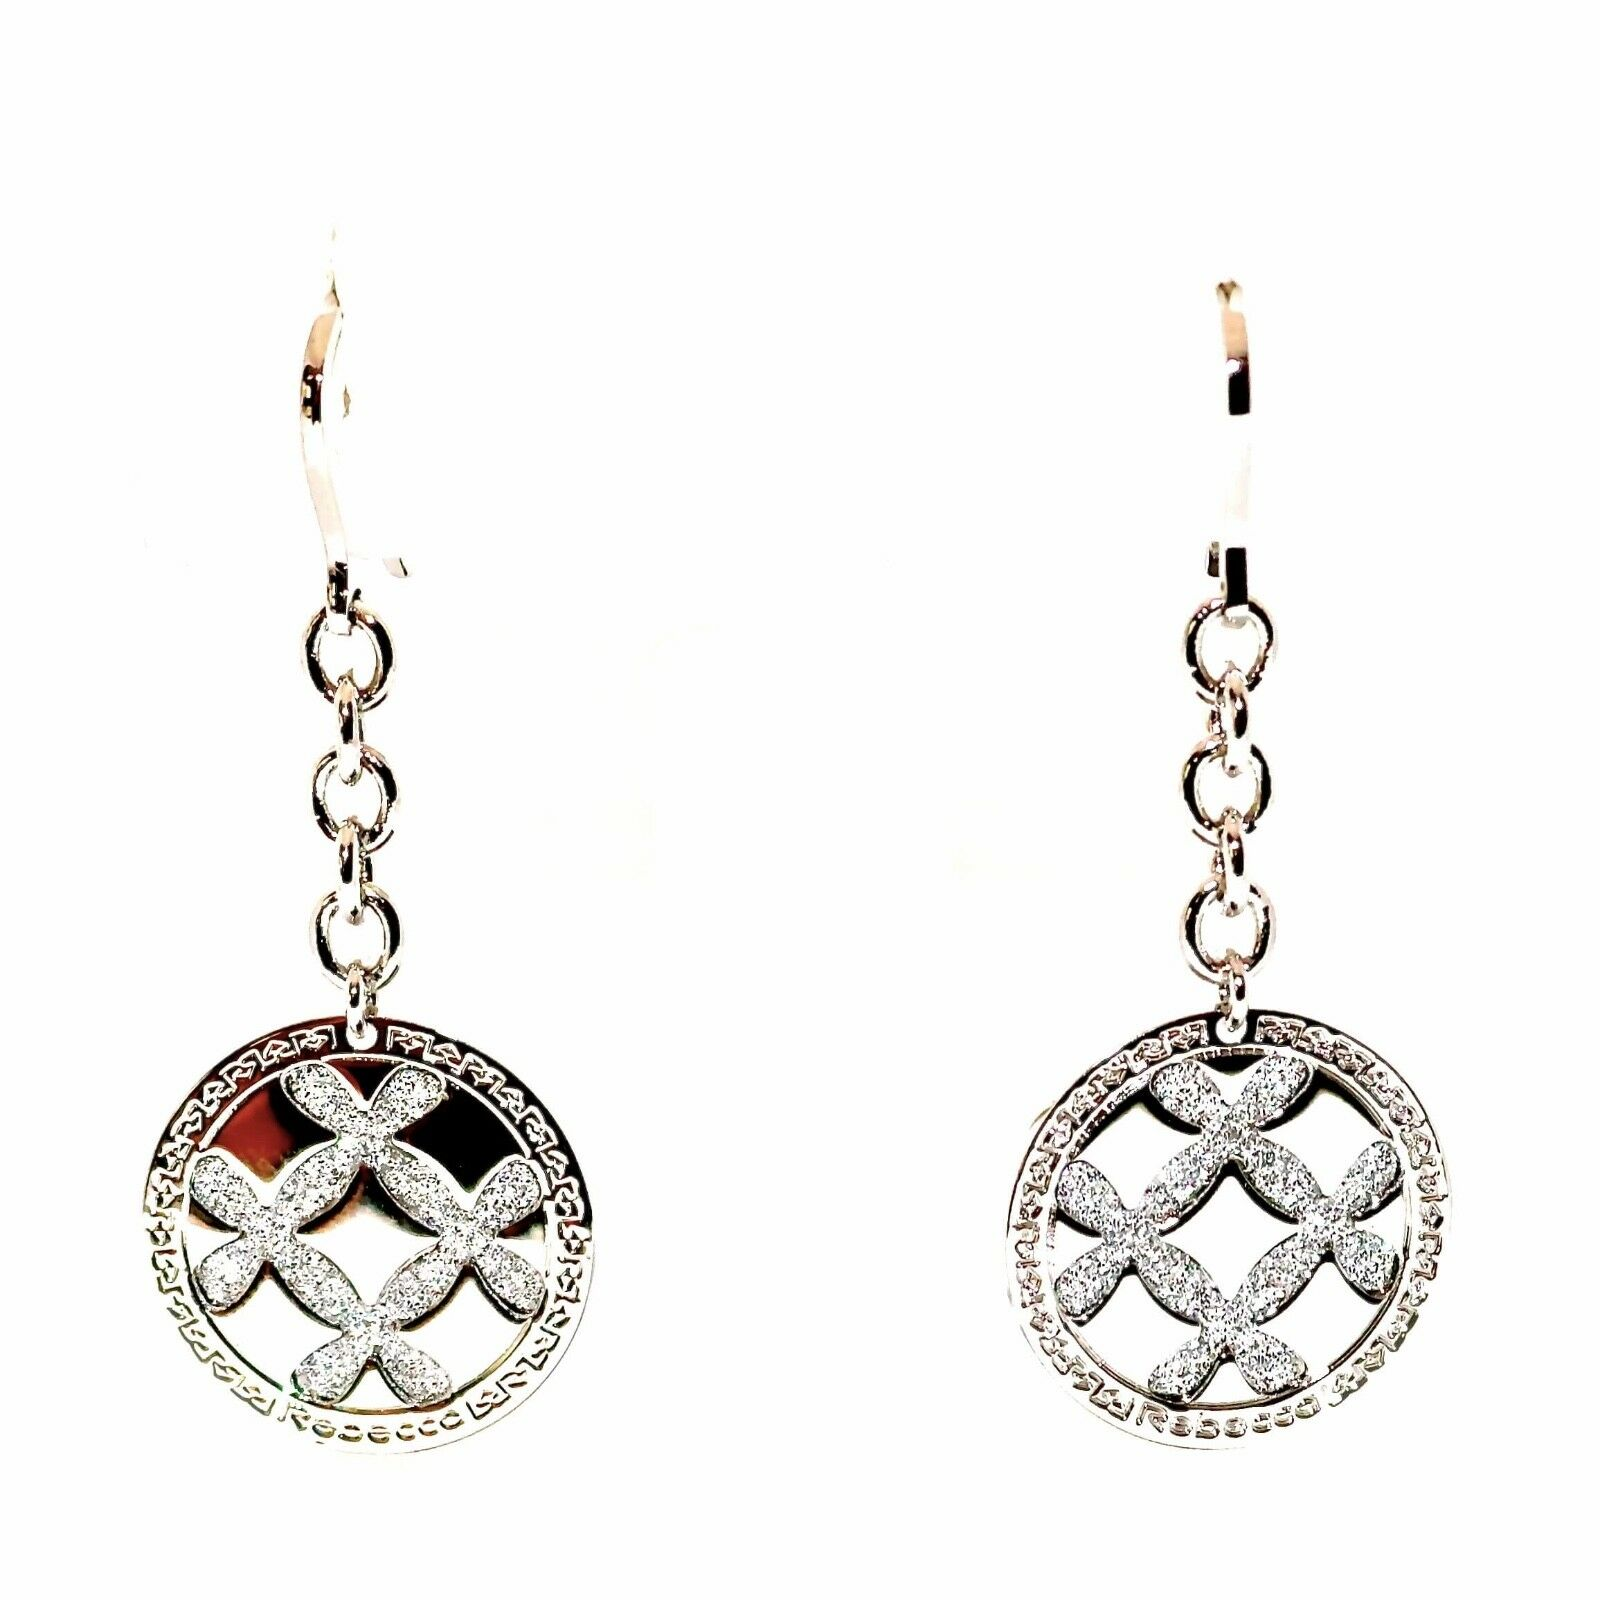 Rebecca Small Circle Chain Earrings in Stainless Steel